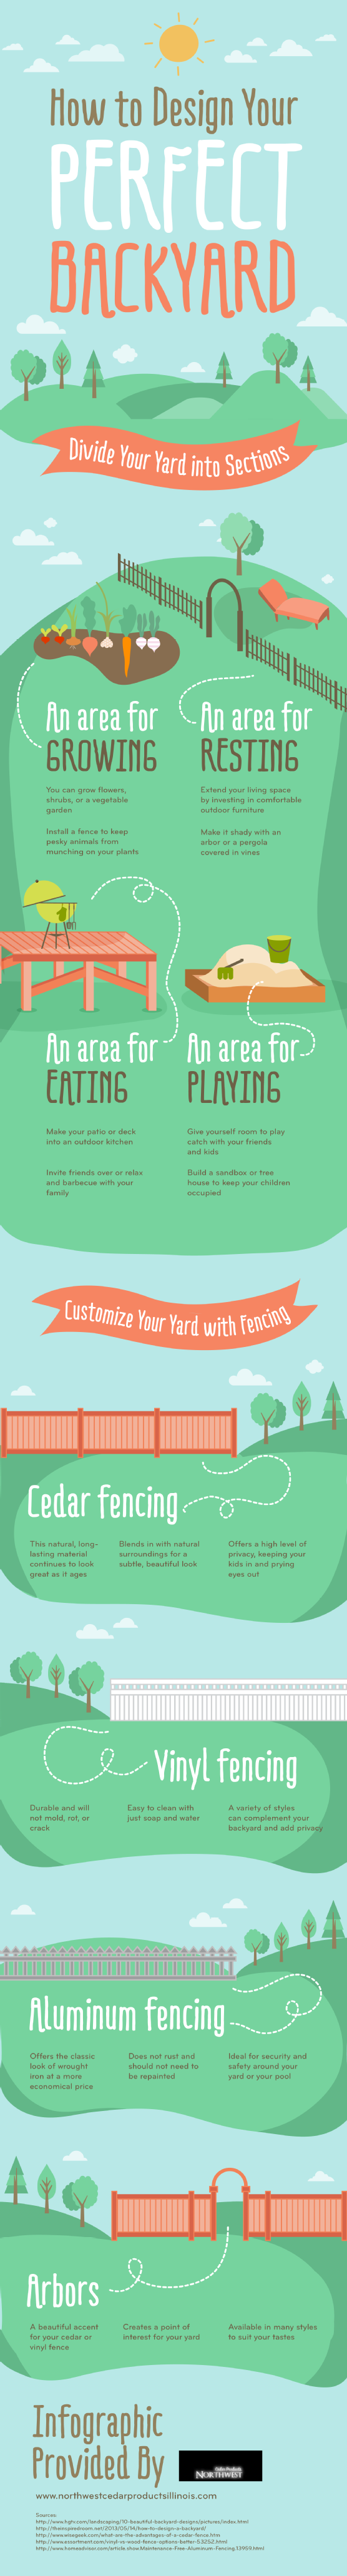 How To Design Your Perfect Backyard  #Infographic